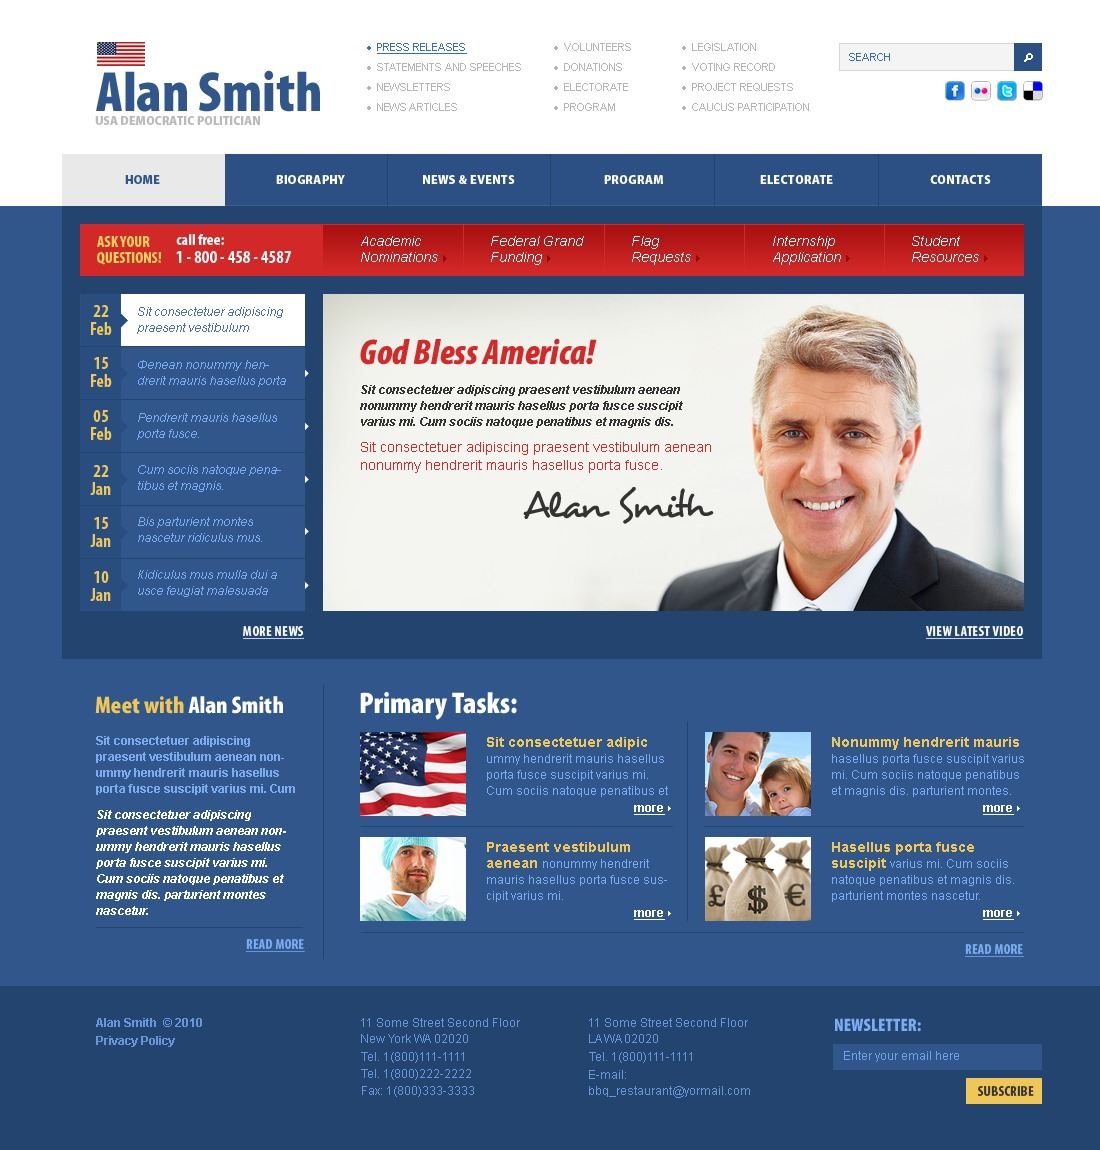 The Alan Smith Politician PSD Design 54370, one of the best PSD templates of its kind (politics, most popular, wide), also known as Alan Smith politician PSD template, political organization PSD template, leader PSD template, chairman PSD template, campaign PSD template, constitution PSD template, member PSD template, principles PSD template, information PSD template, donation PSD template, platform PSD template, flag PSD template, candidates PSD template, debates PSD template, structure PSD template, election PSD template, program PSD template, priority and related with Alan Smith politician, political organization, leader, chairman, campaign, constitution, member, principles, information, donation, platform, flag, candidates, debates, structure, election, program, priority, etc.